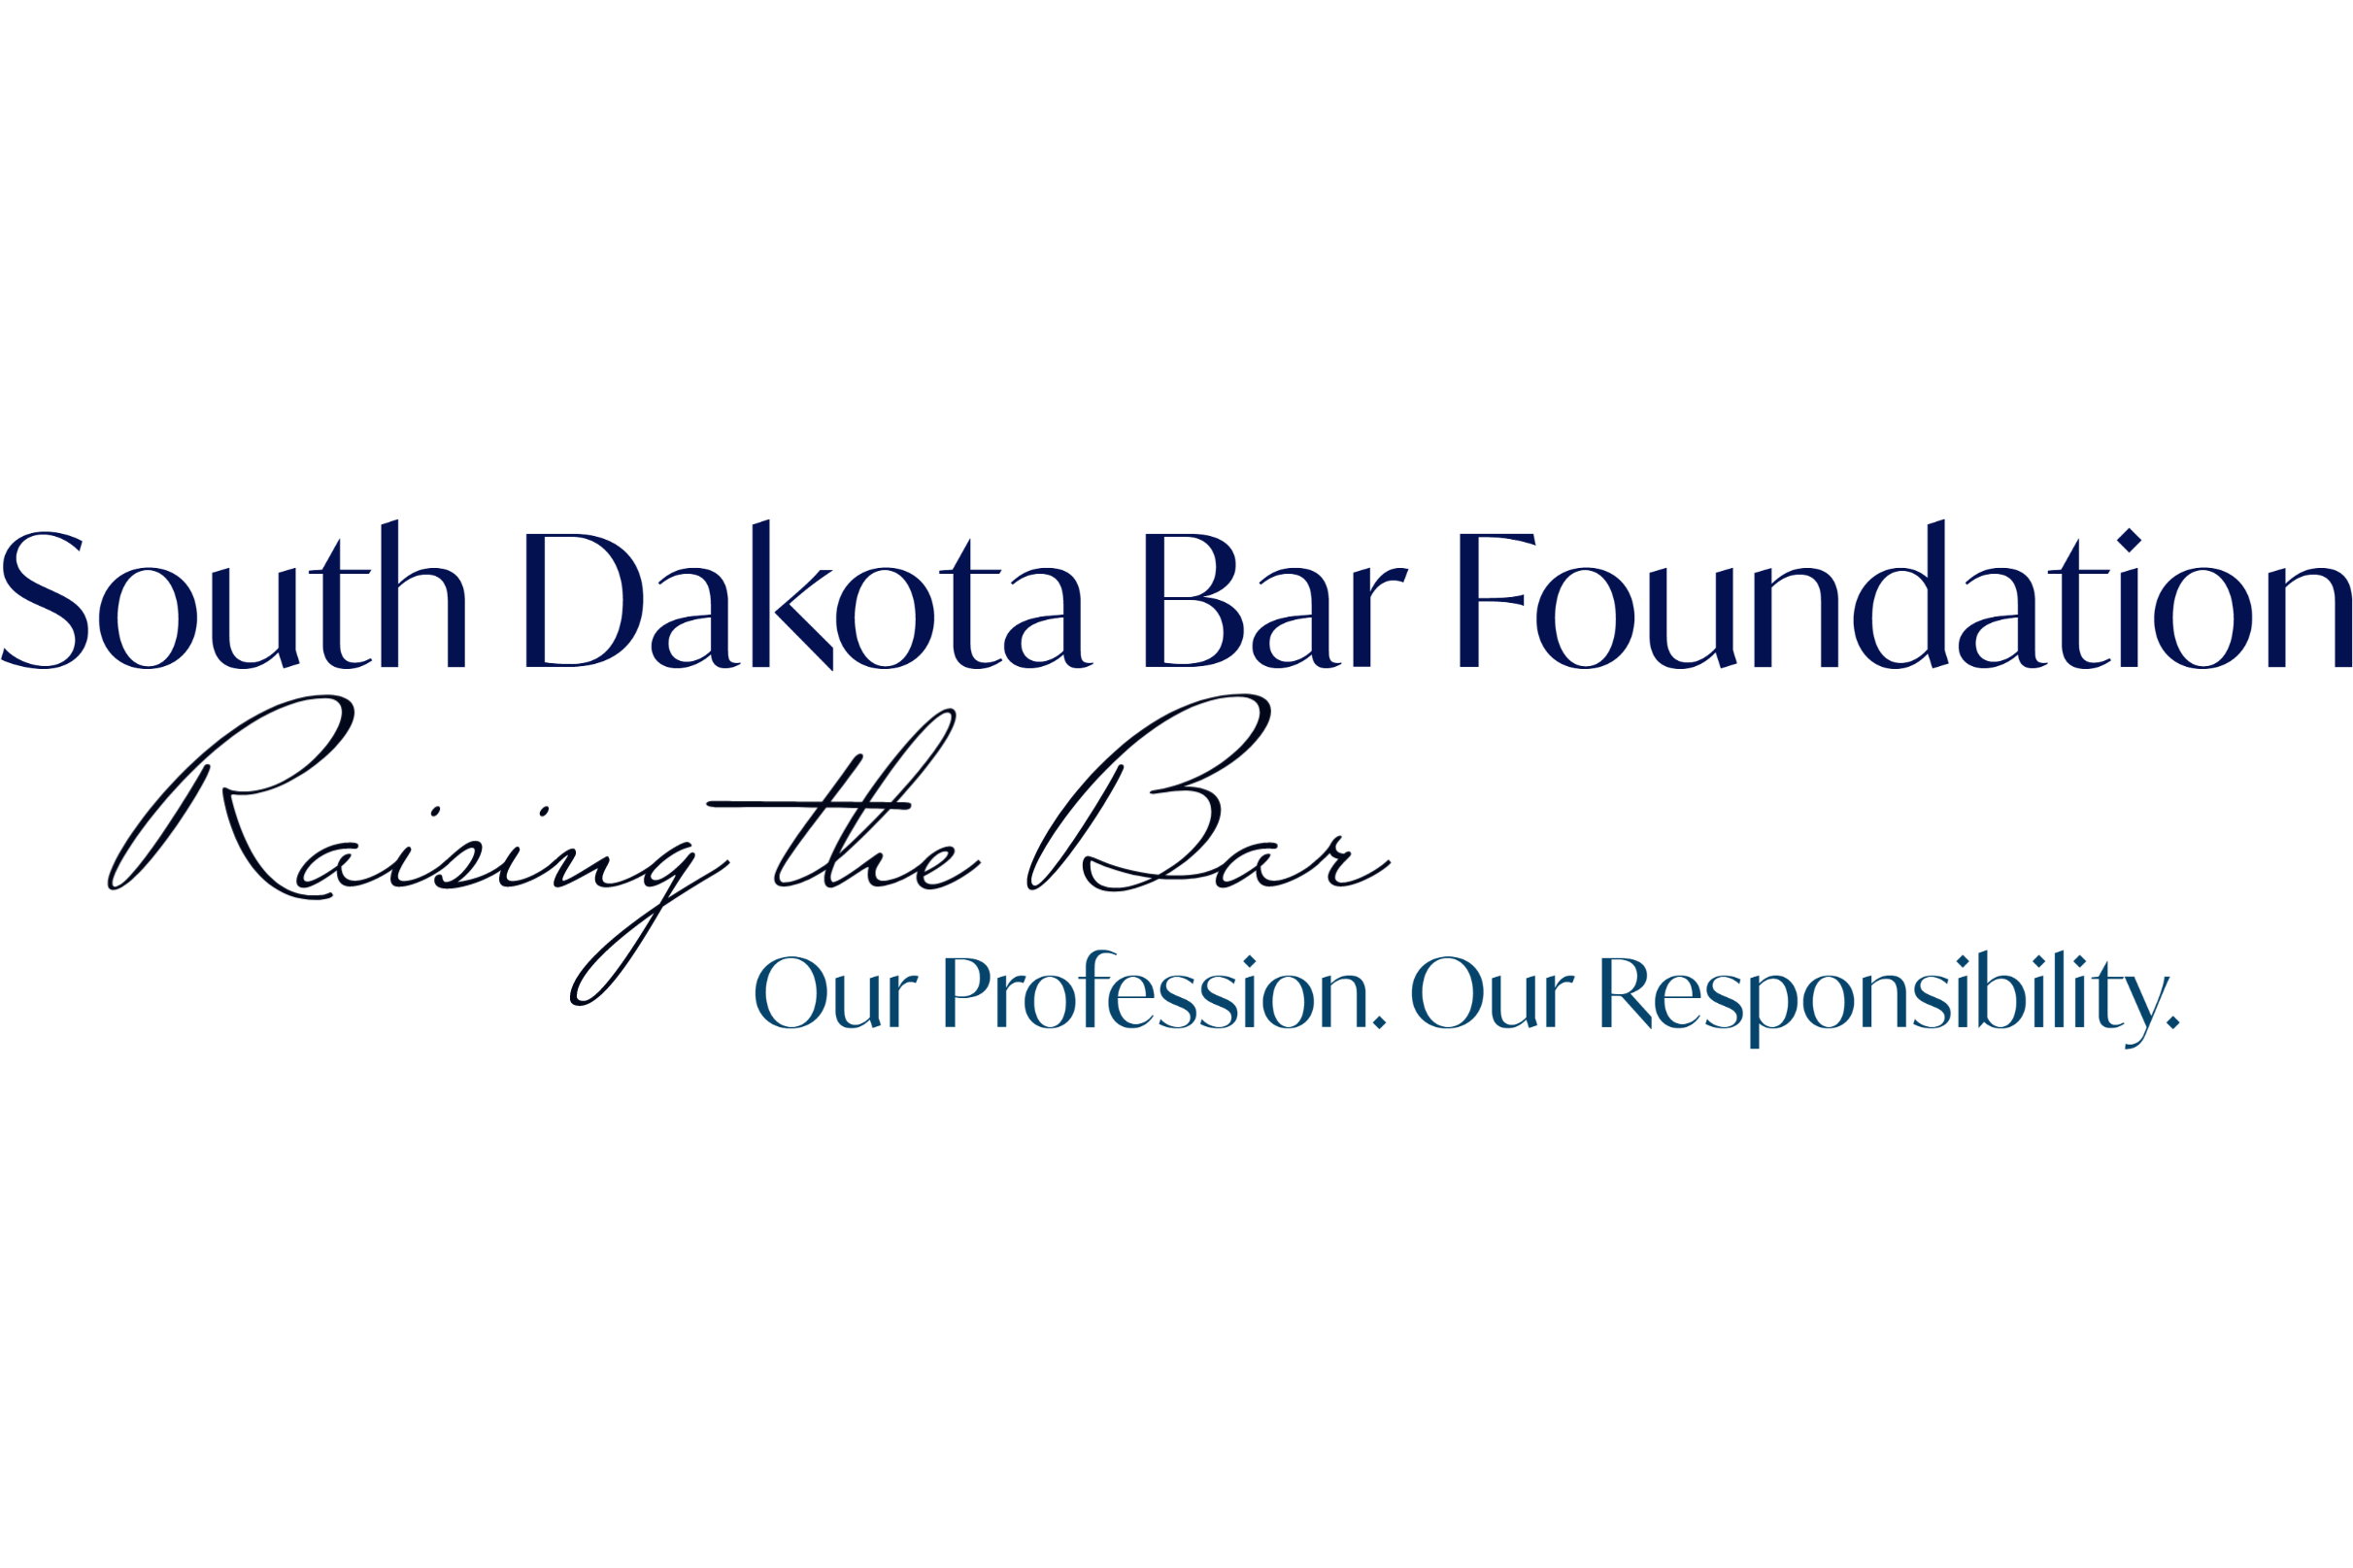 https://iolta.org/wp-content/uploads/South-Dakota-Bar-Fondation-Logo.png